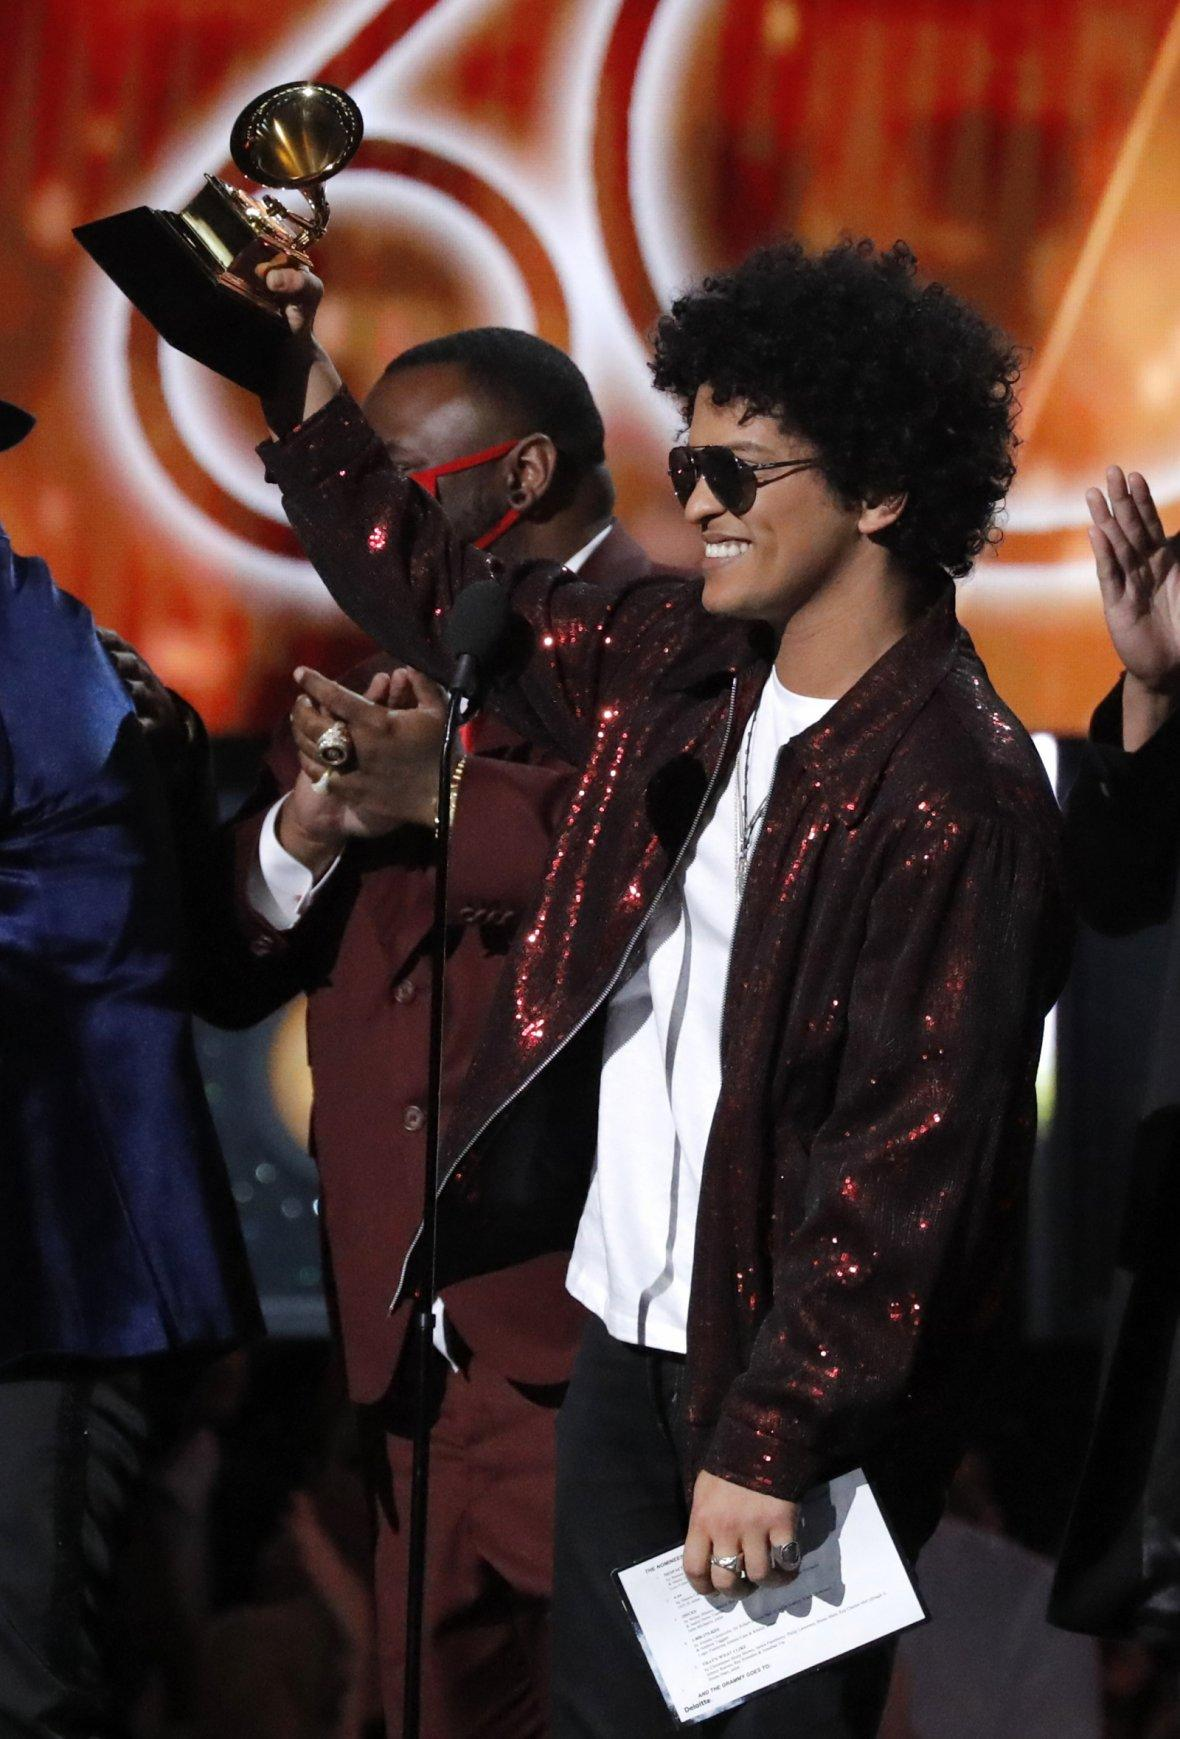 Bruno Mars accepts the Grammy for song of the year for